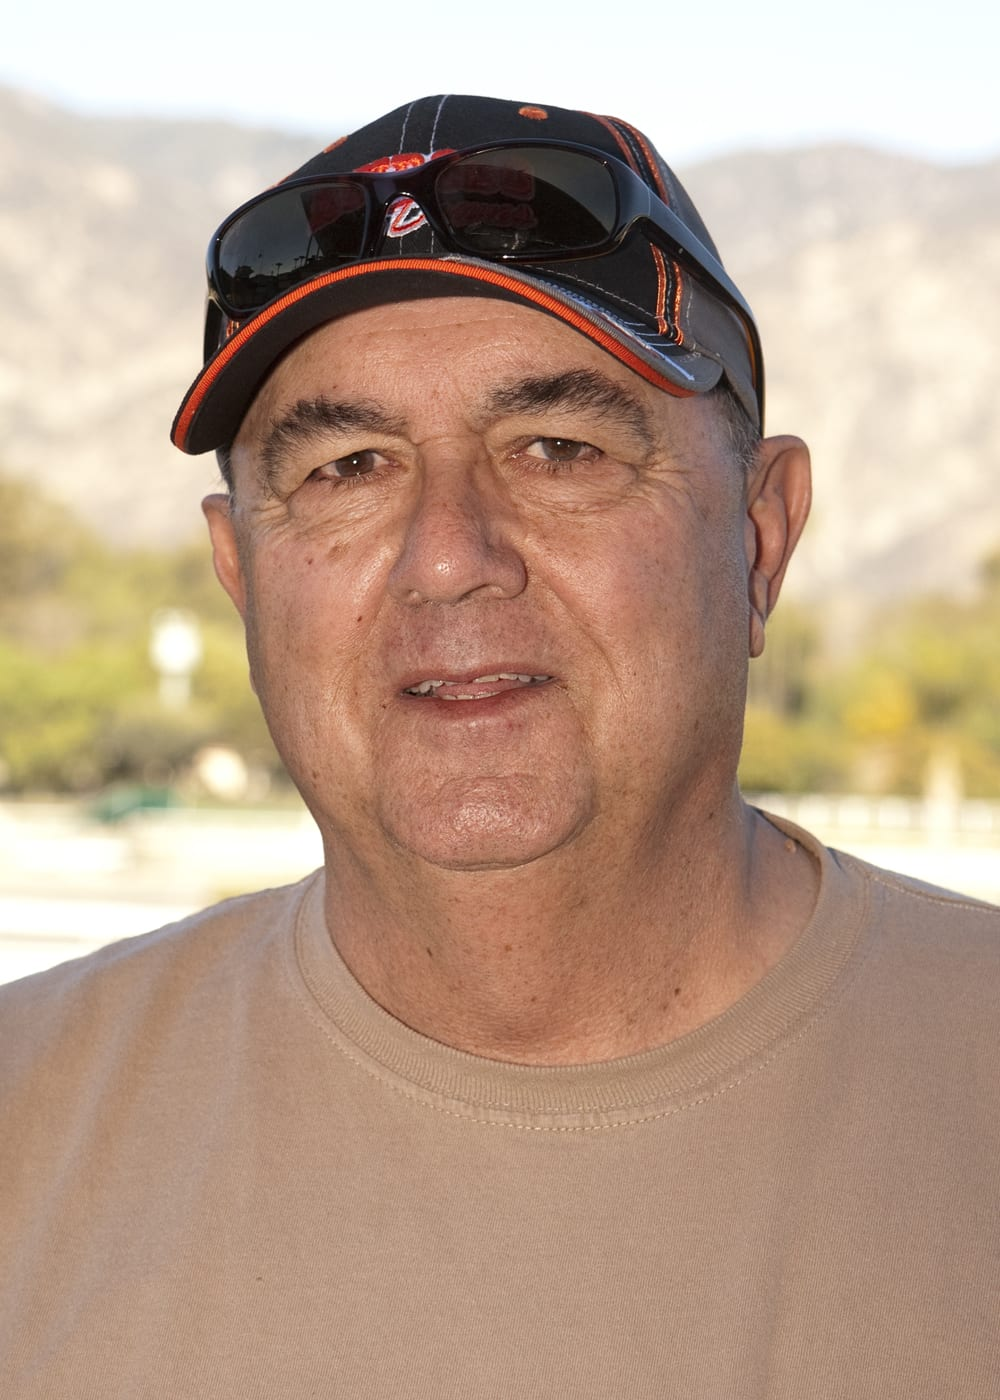 The Breeders Cup Forum Track Superintendent Dennis Moore